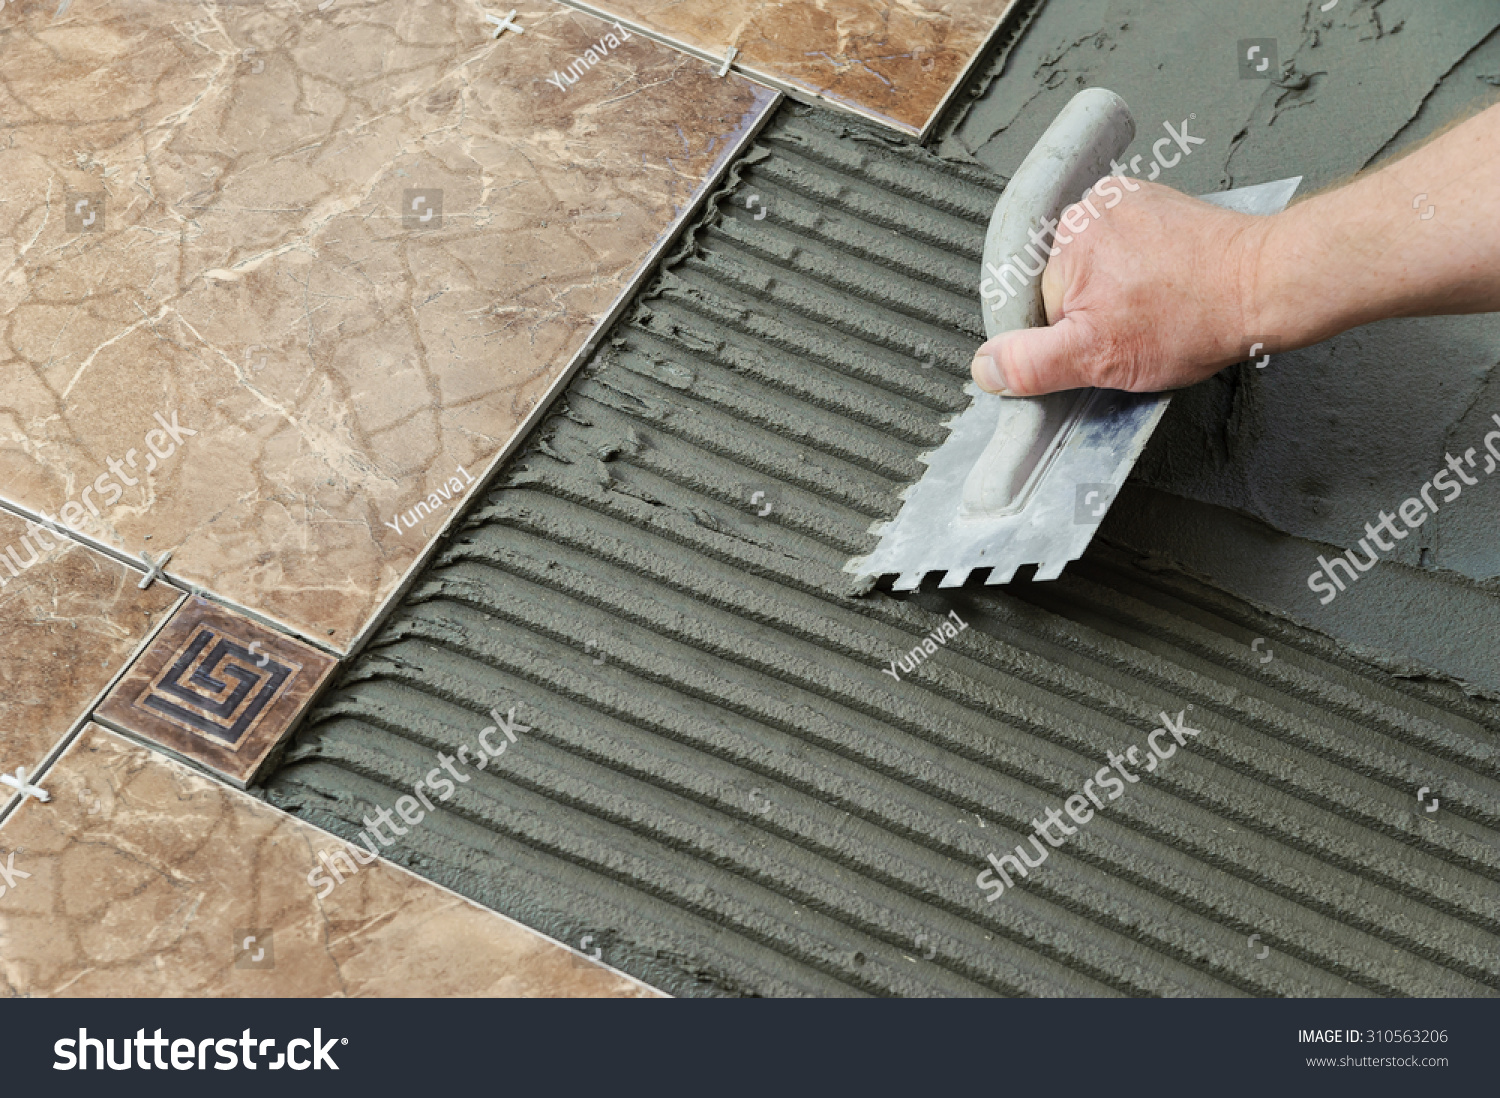 Laying Ceramic Tiles Troweling adhesive onto a concrete floor in preparation for laying white floor tile